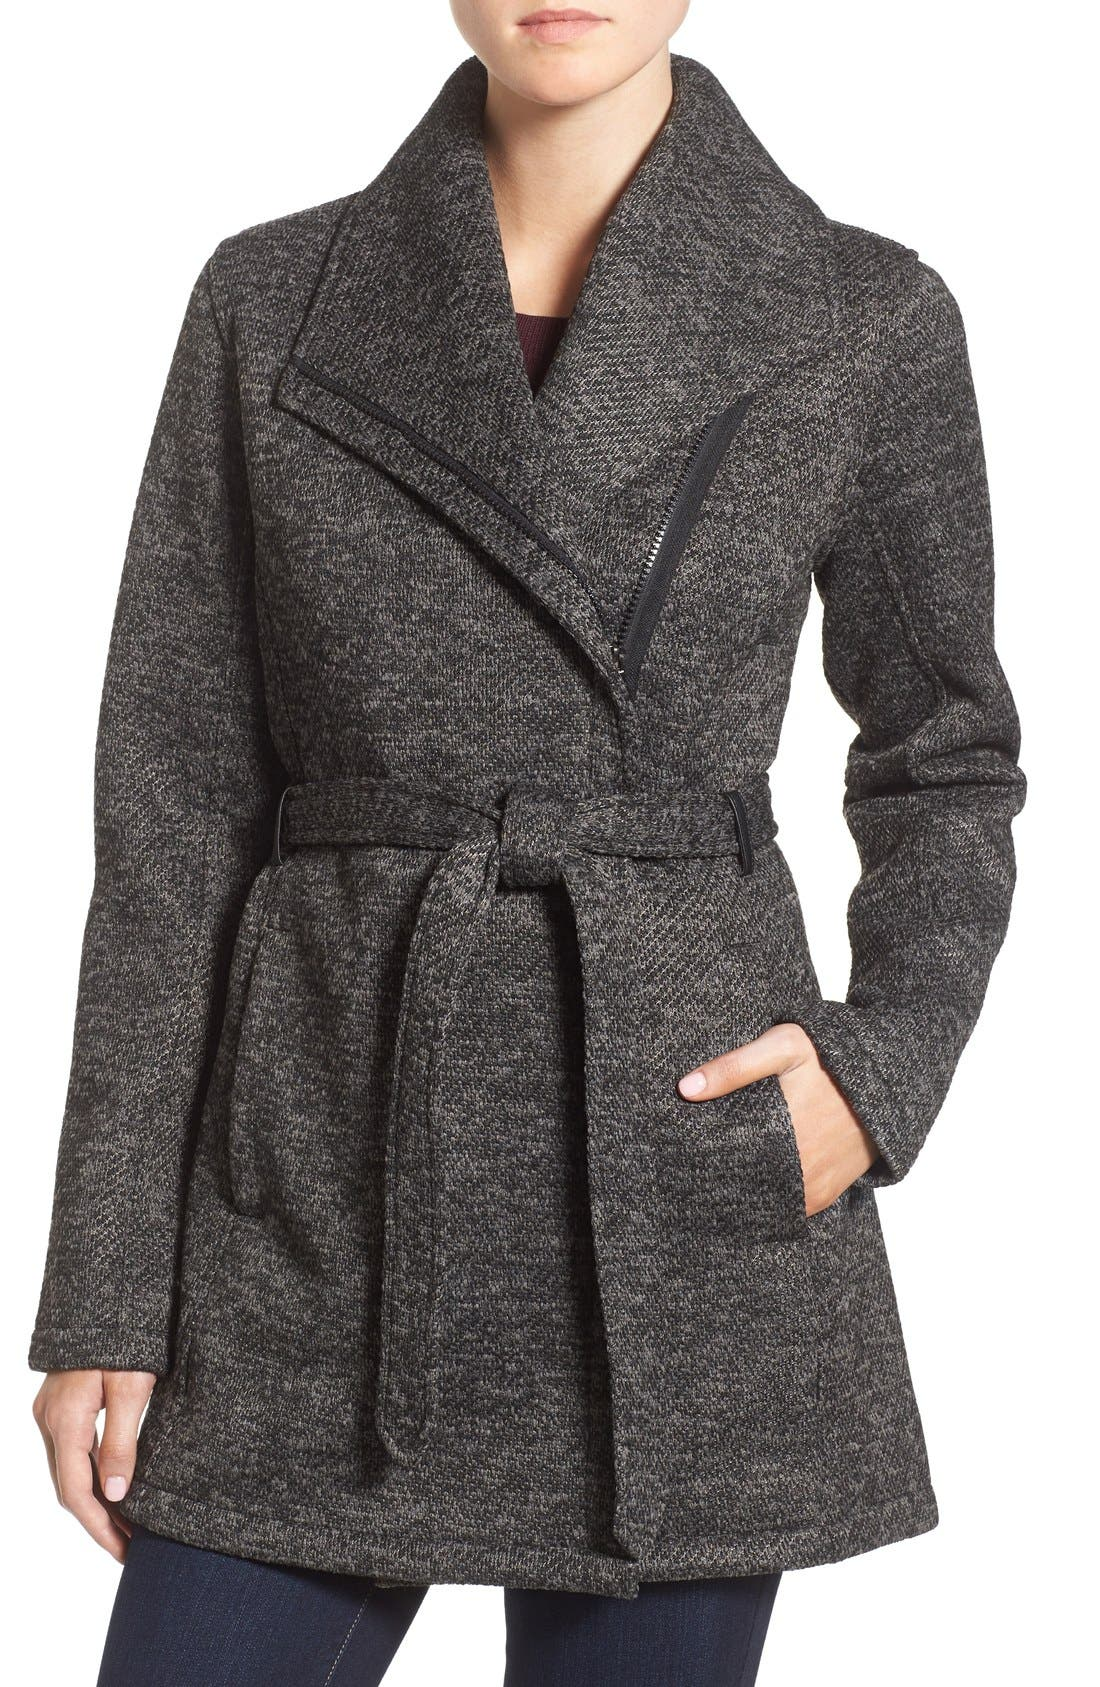 Steve Madden Fleece Wrap Jacket | Nordstrom